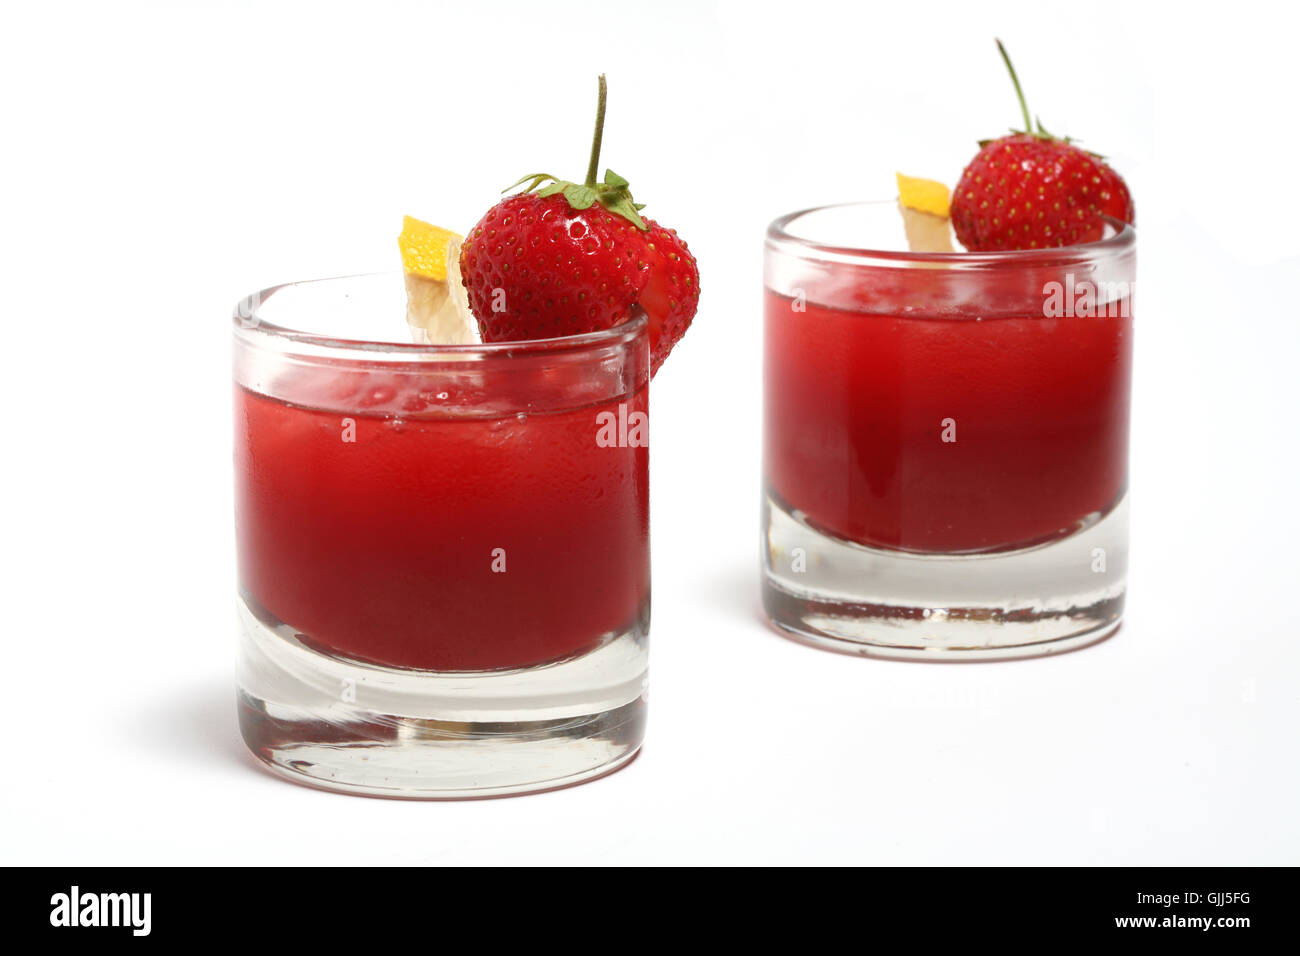 Erdbeer Smoothie Erdbeer Smoothie Stock Photos Erdbeer Smoothie Stock Images Alamy